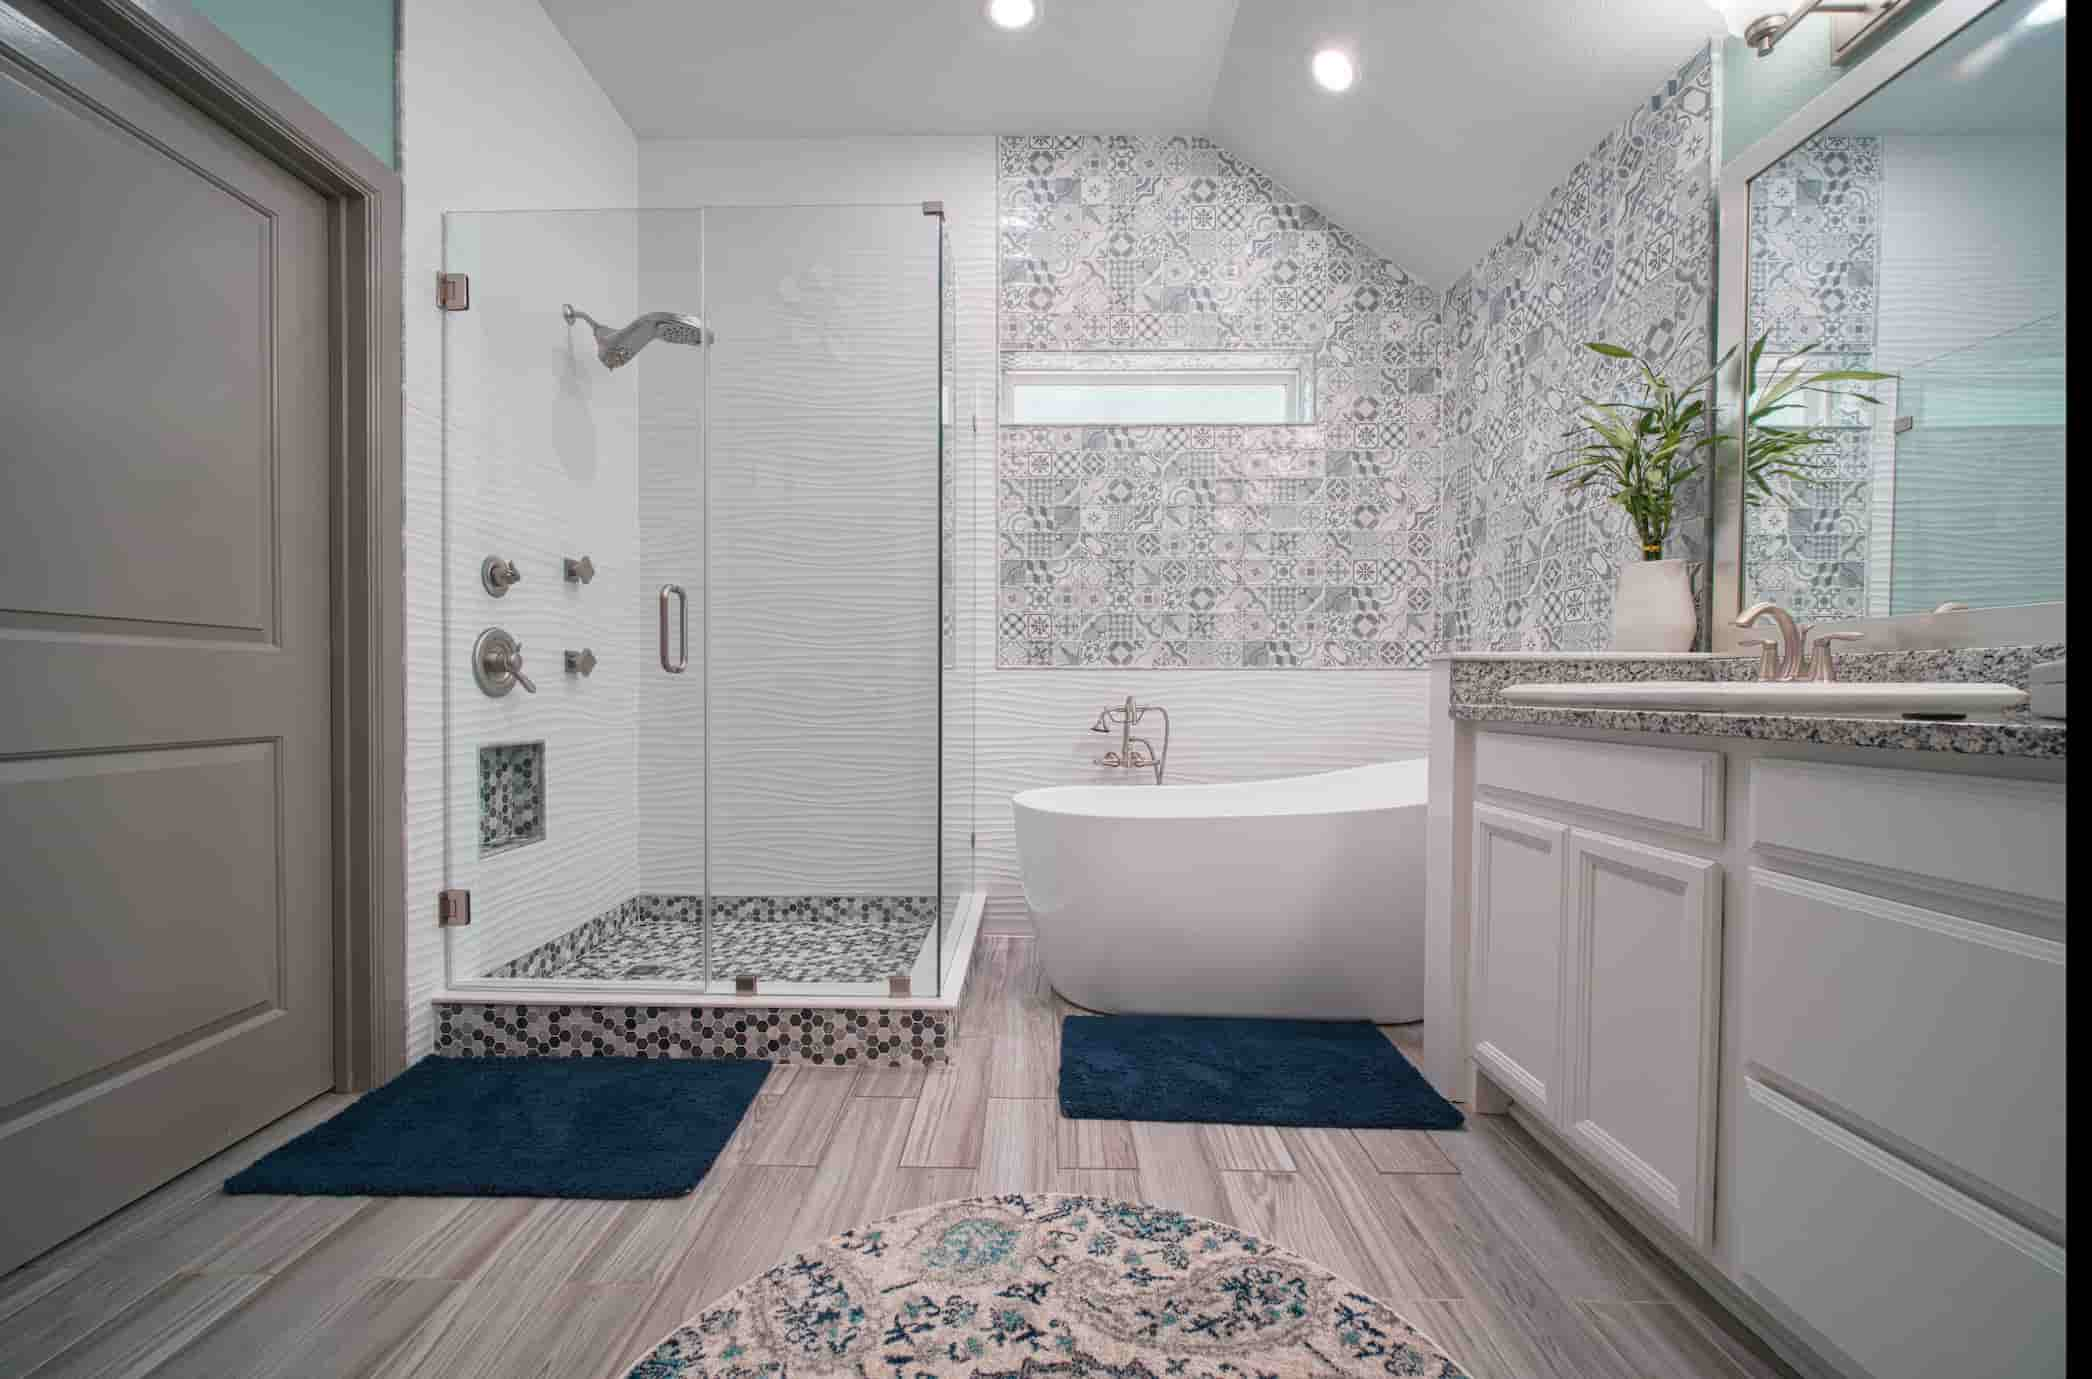 Your bathroom is one of the most-used rooms in your home, especially if you have a lot of people in your home. As an essential room, it's vital it's fit for purpose and has everything you need. And one of the things you need is a great shower.